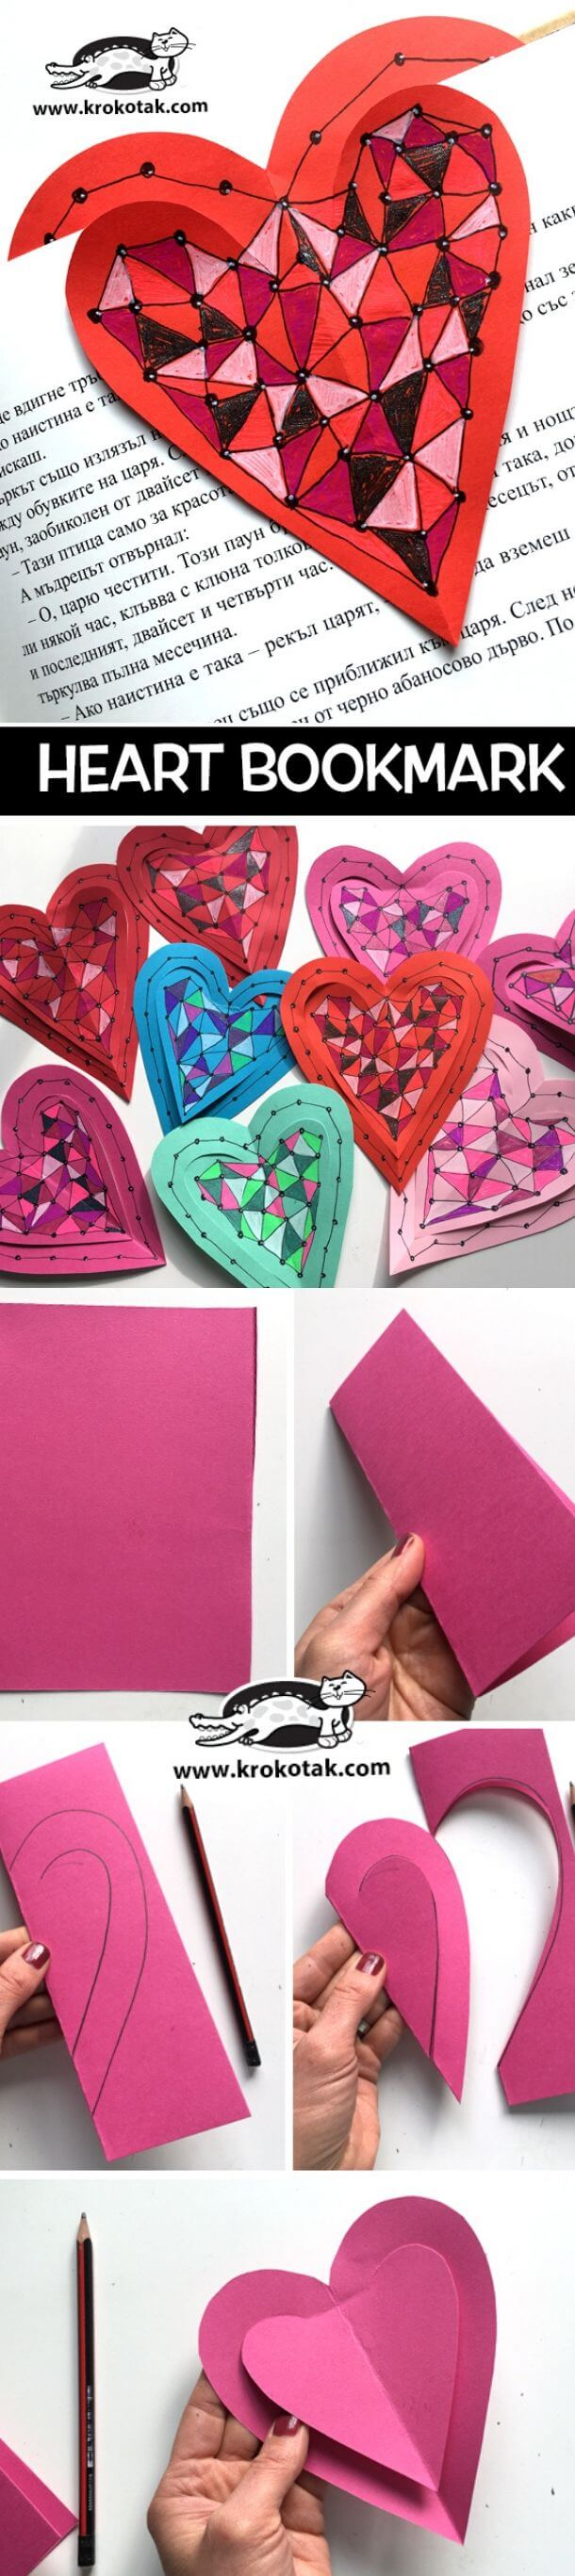 Heart bookmark | Heart-Shaped Crafts For Valentine's Day